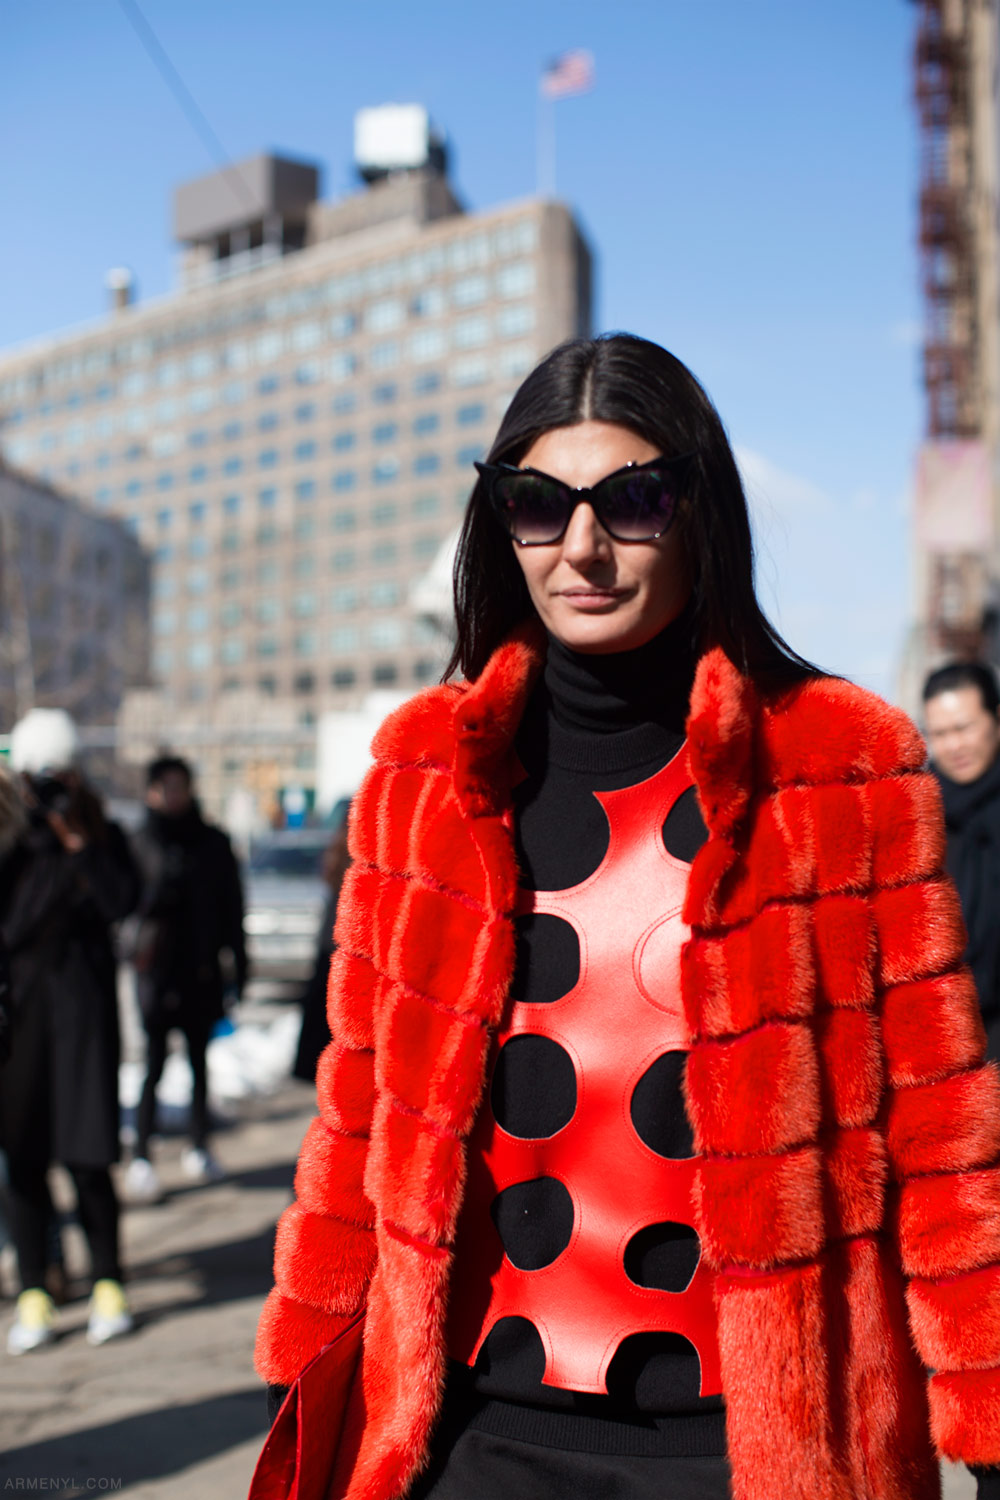 Giovanna (bat gio) in Lady bug red at New York Fashion photographed by Armenyl.com